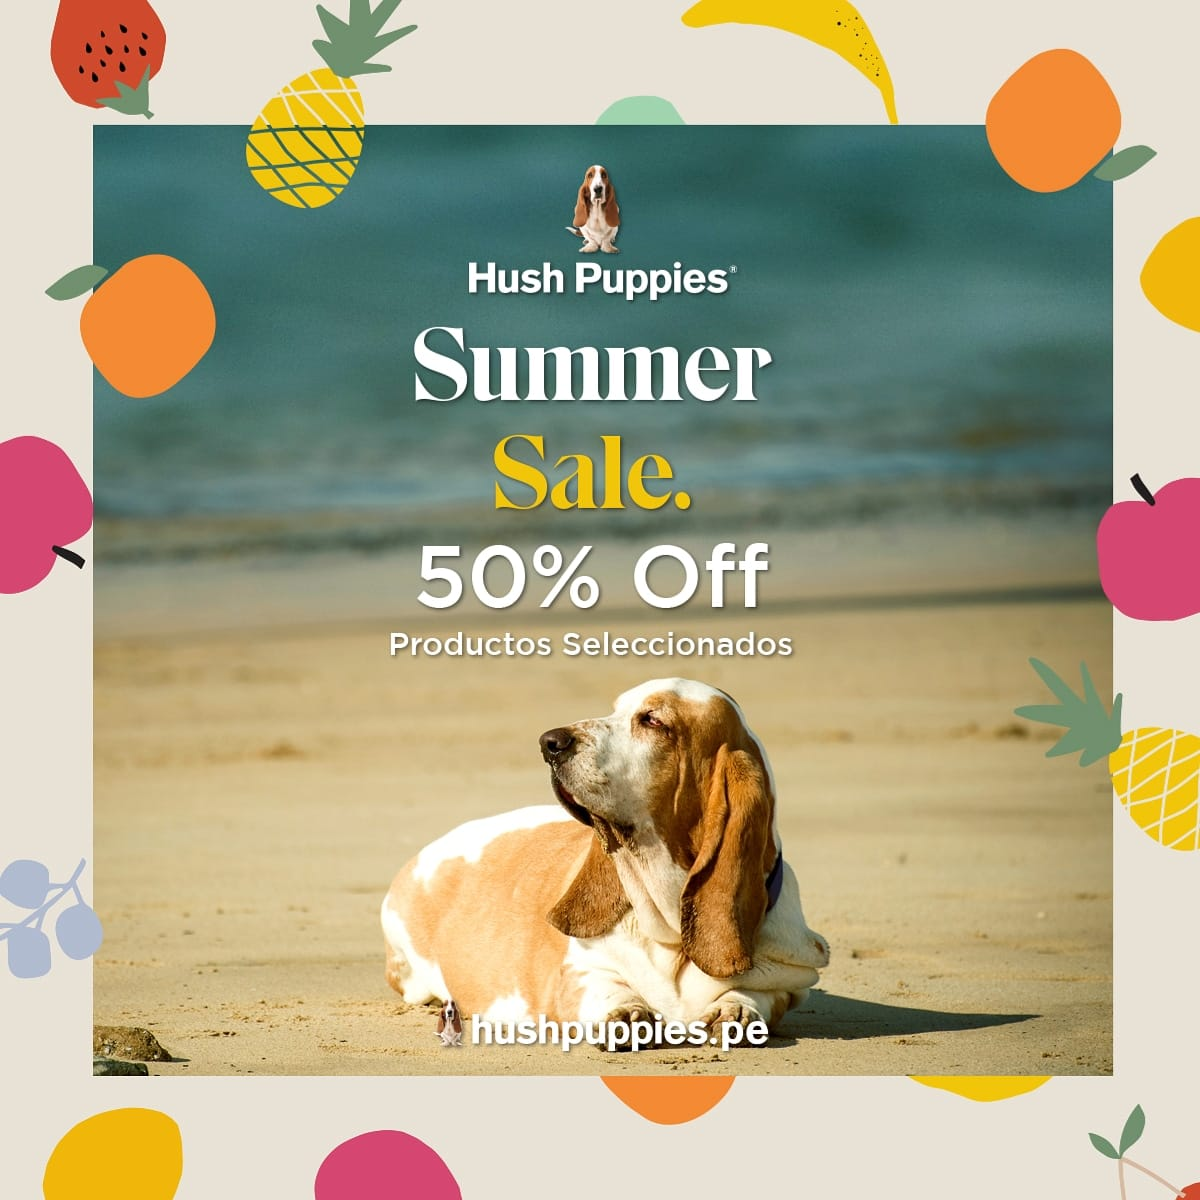 Hush Puppies - Summer Sale